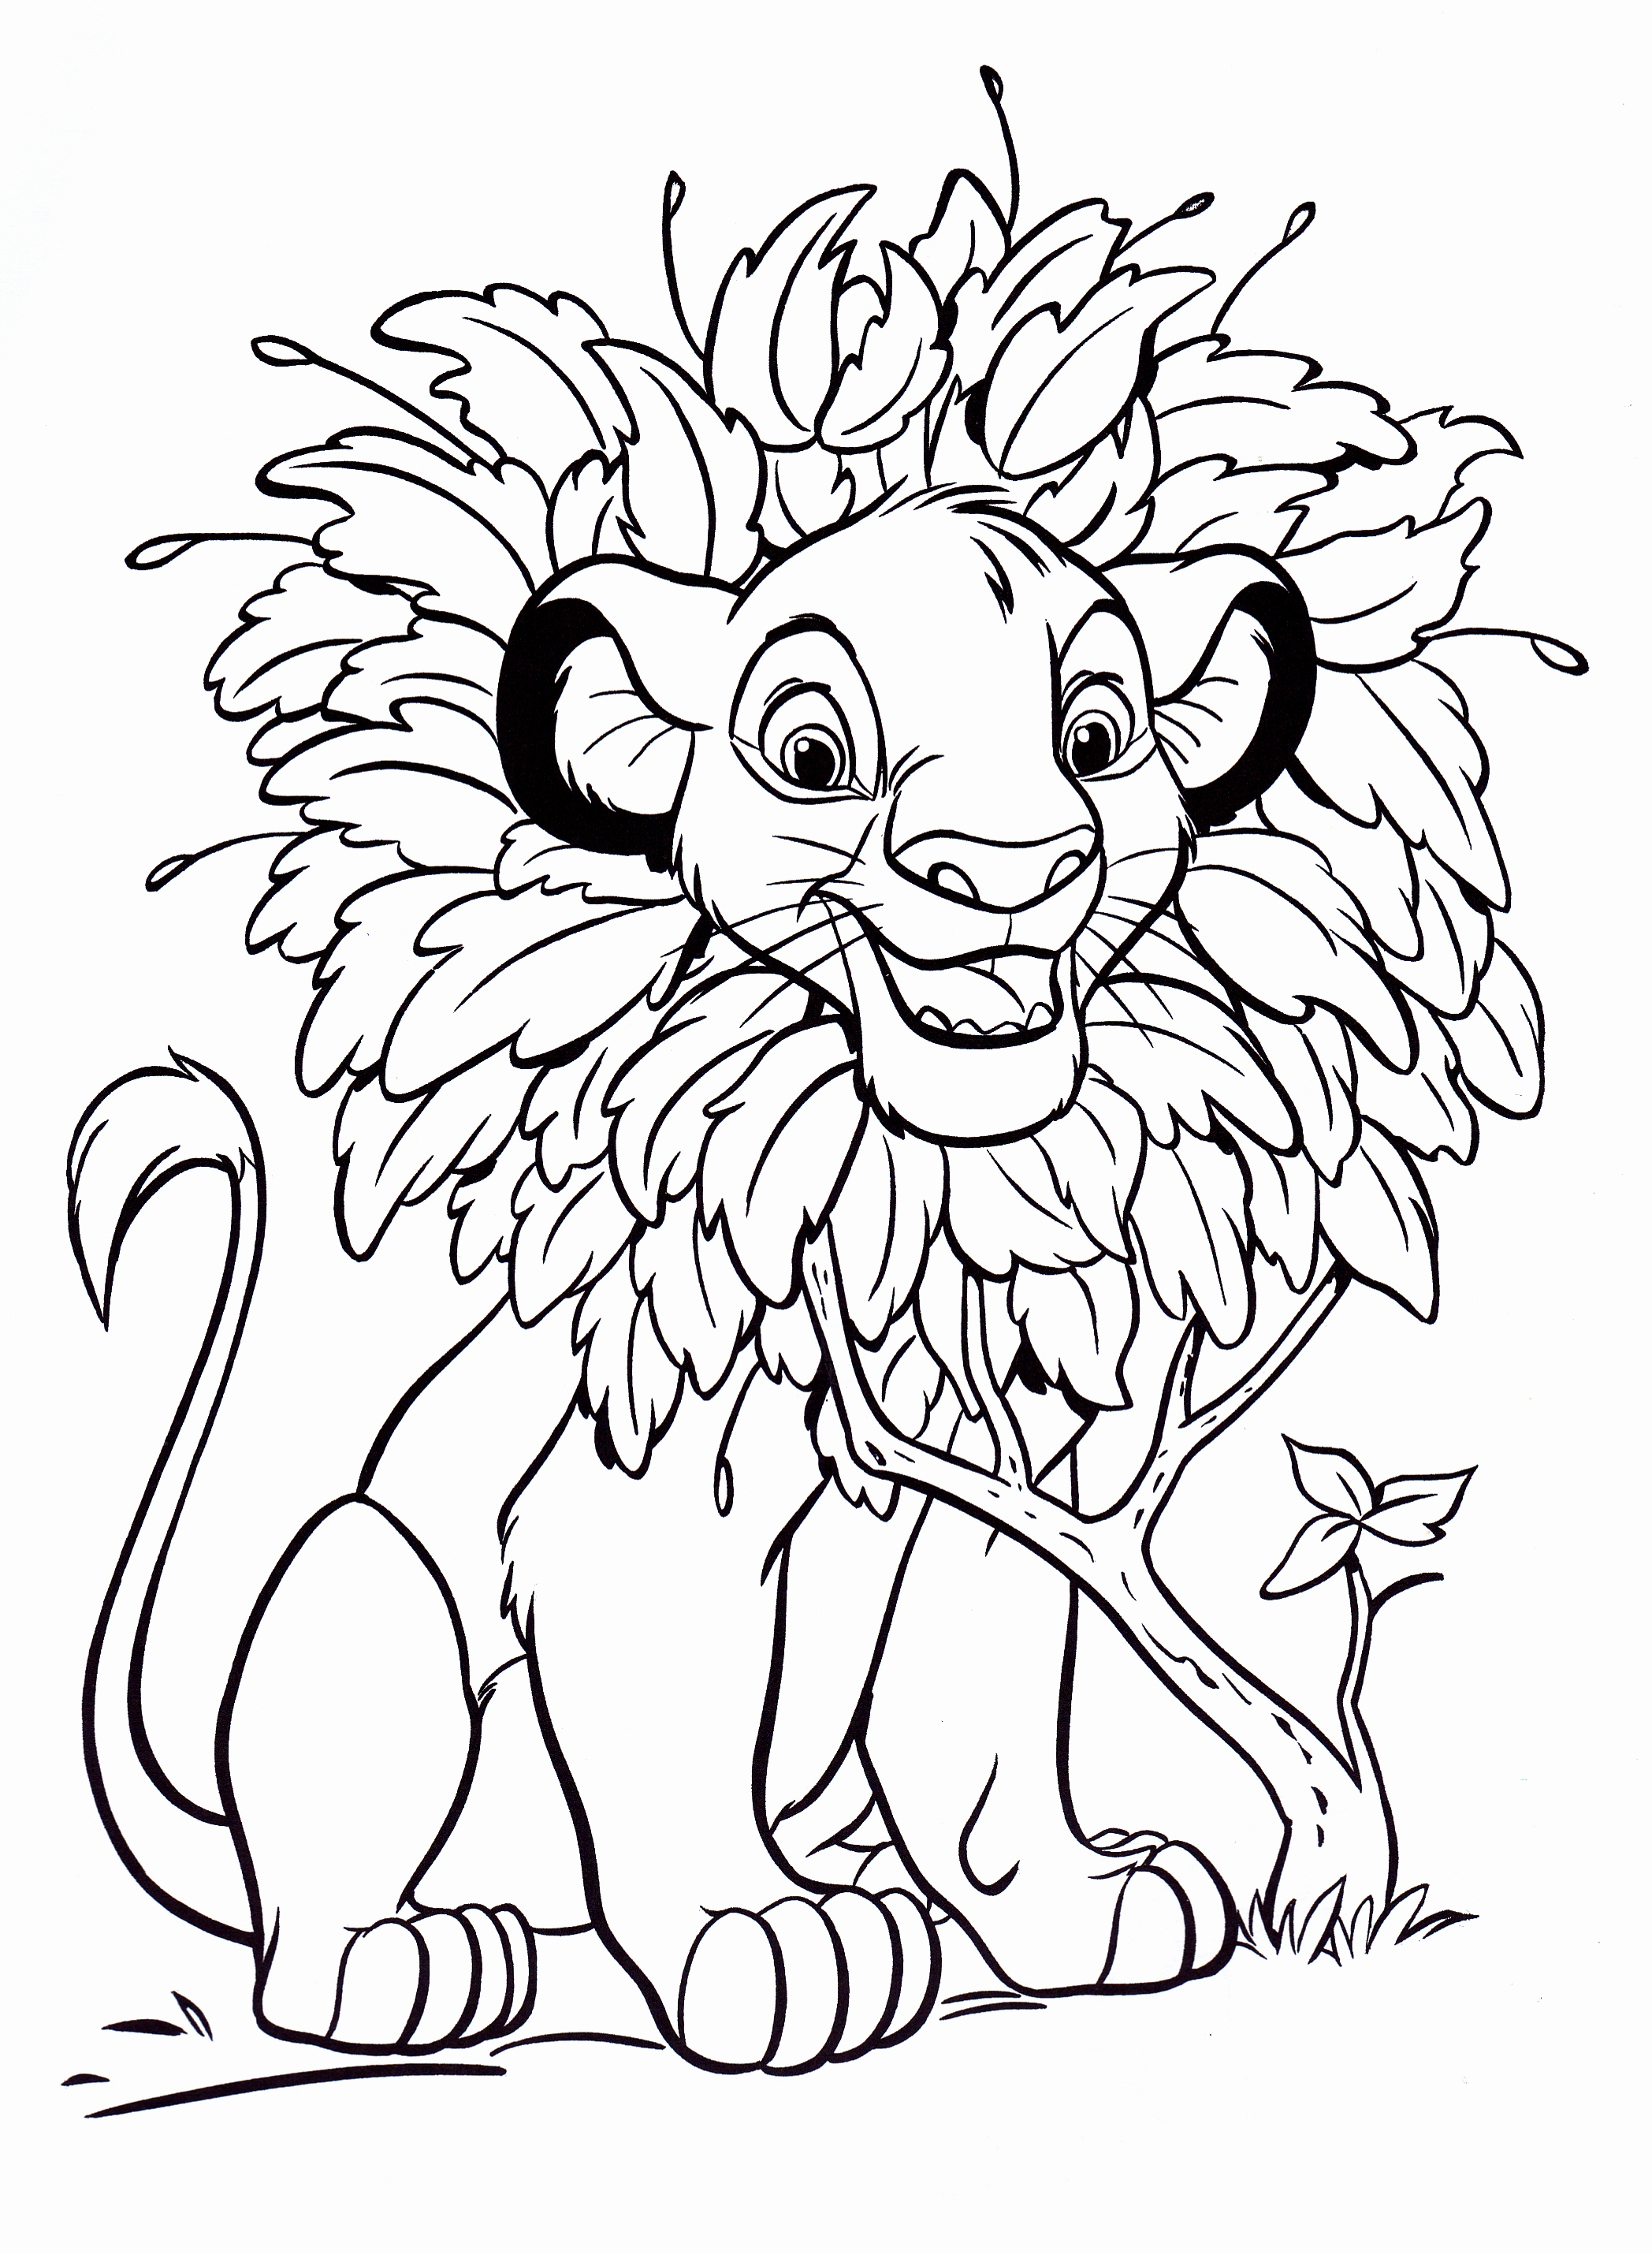 Walt Disney Coloring Pages - Simba - Walt Disney Characters ...